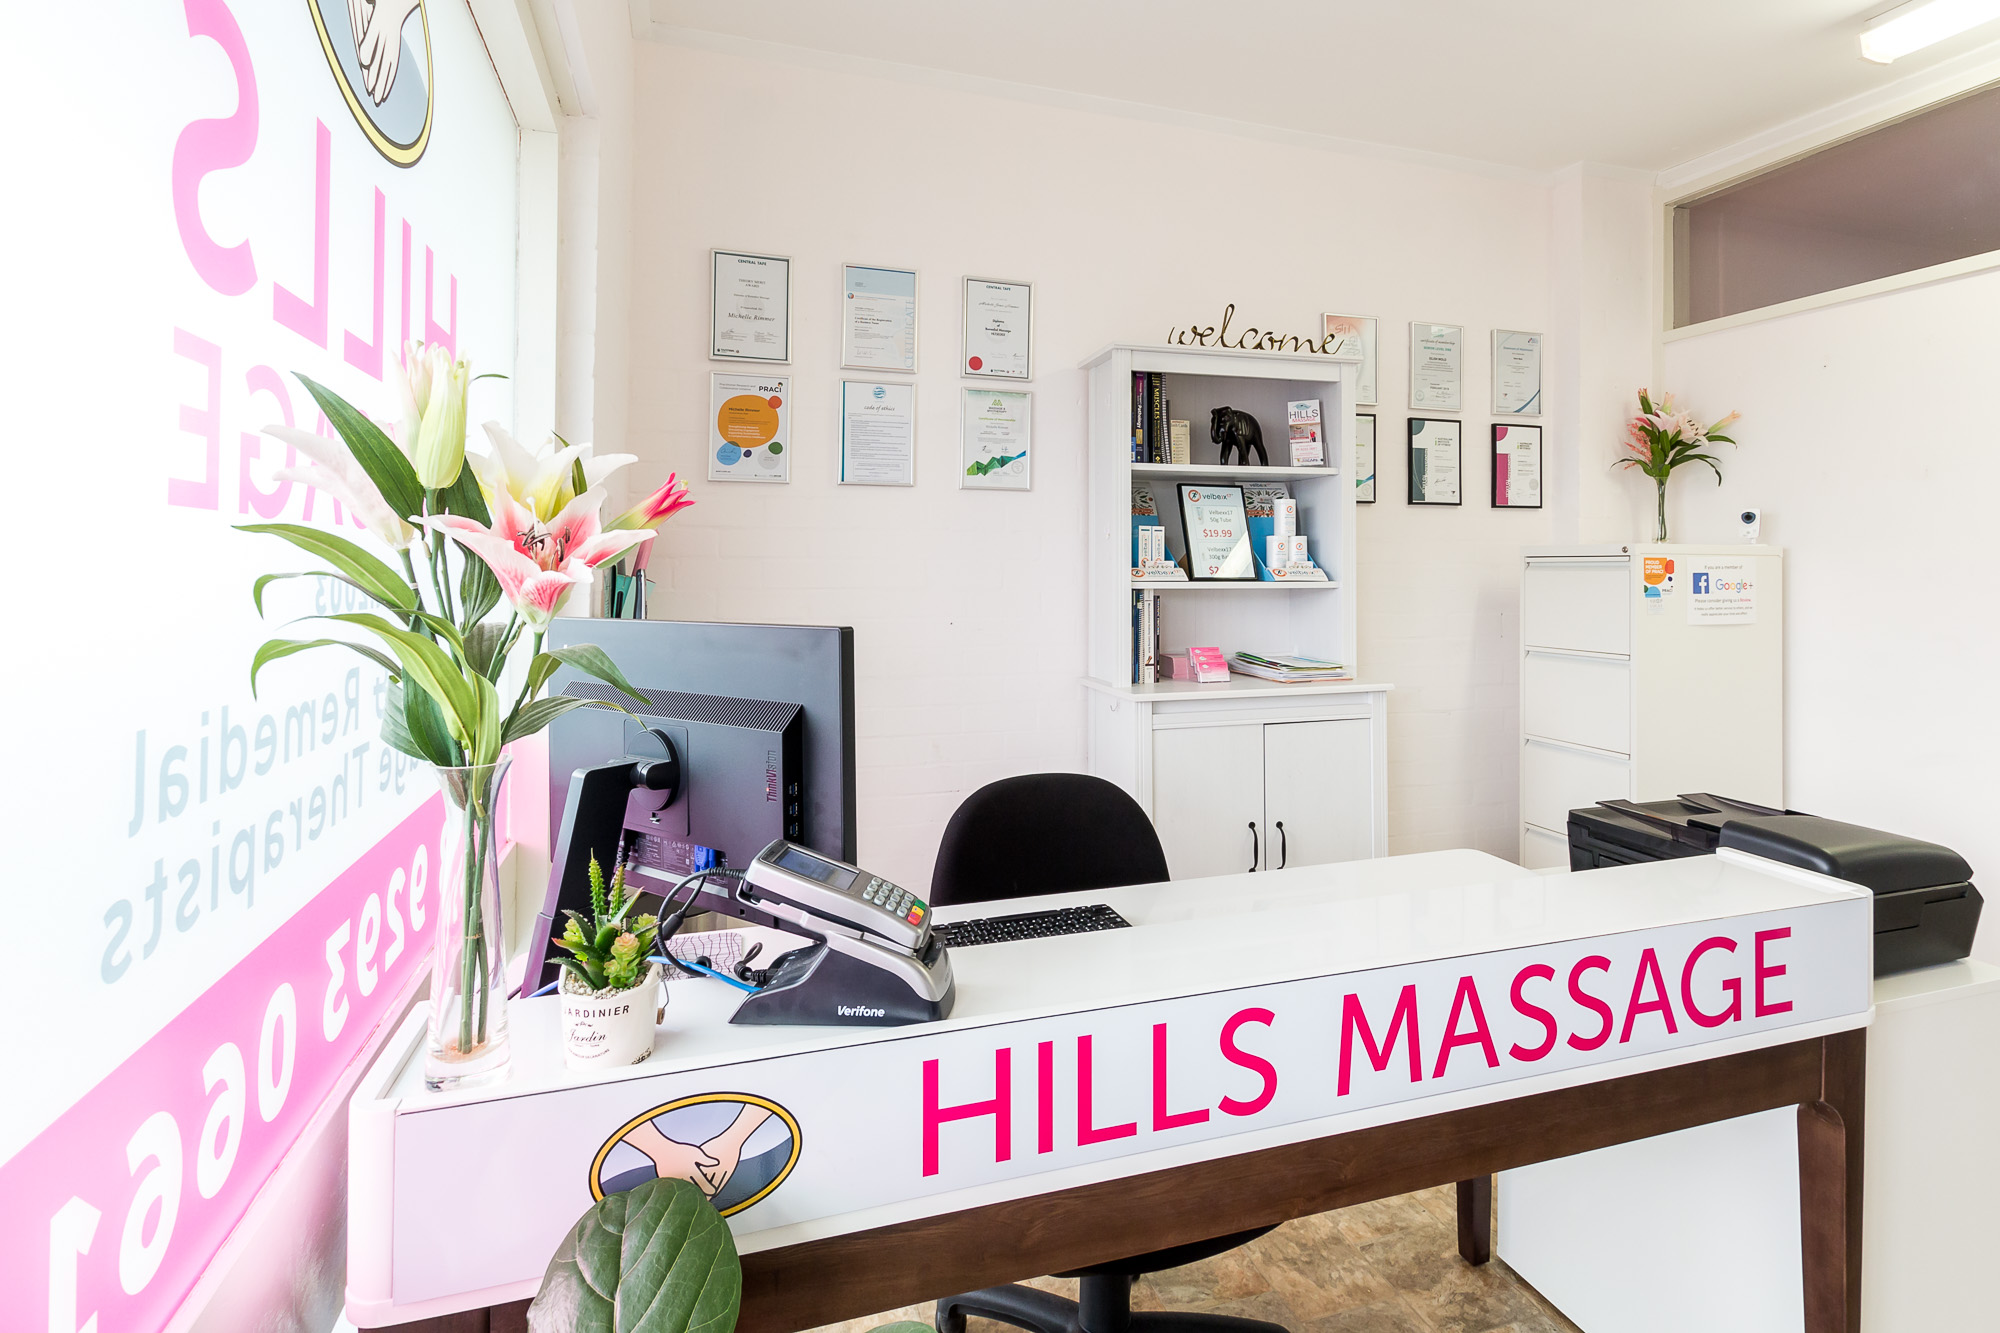 Perth Branding Photography - Hills Massage